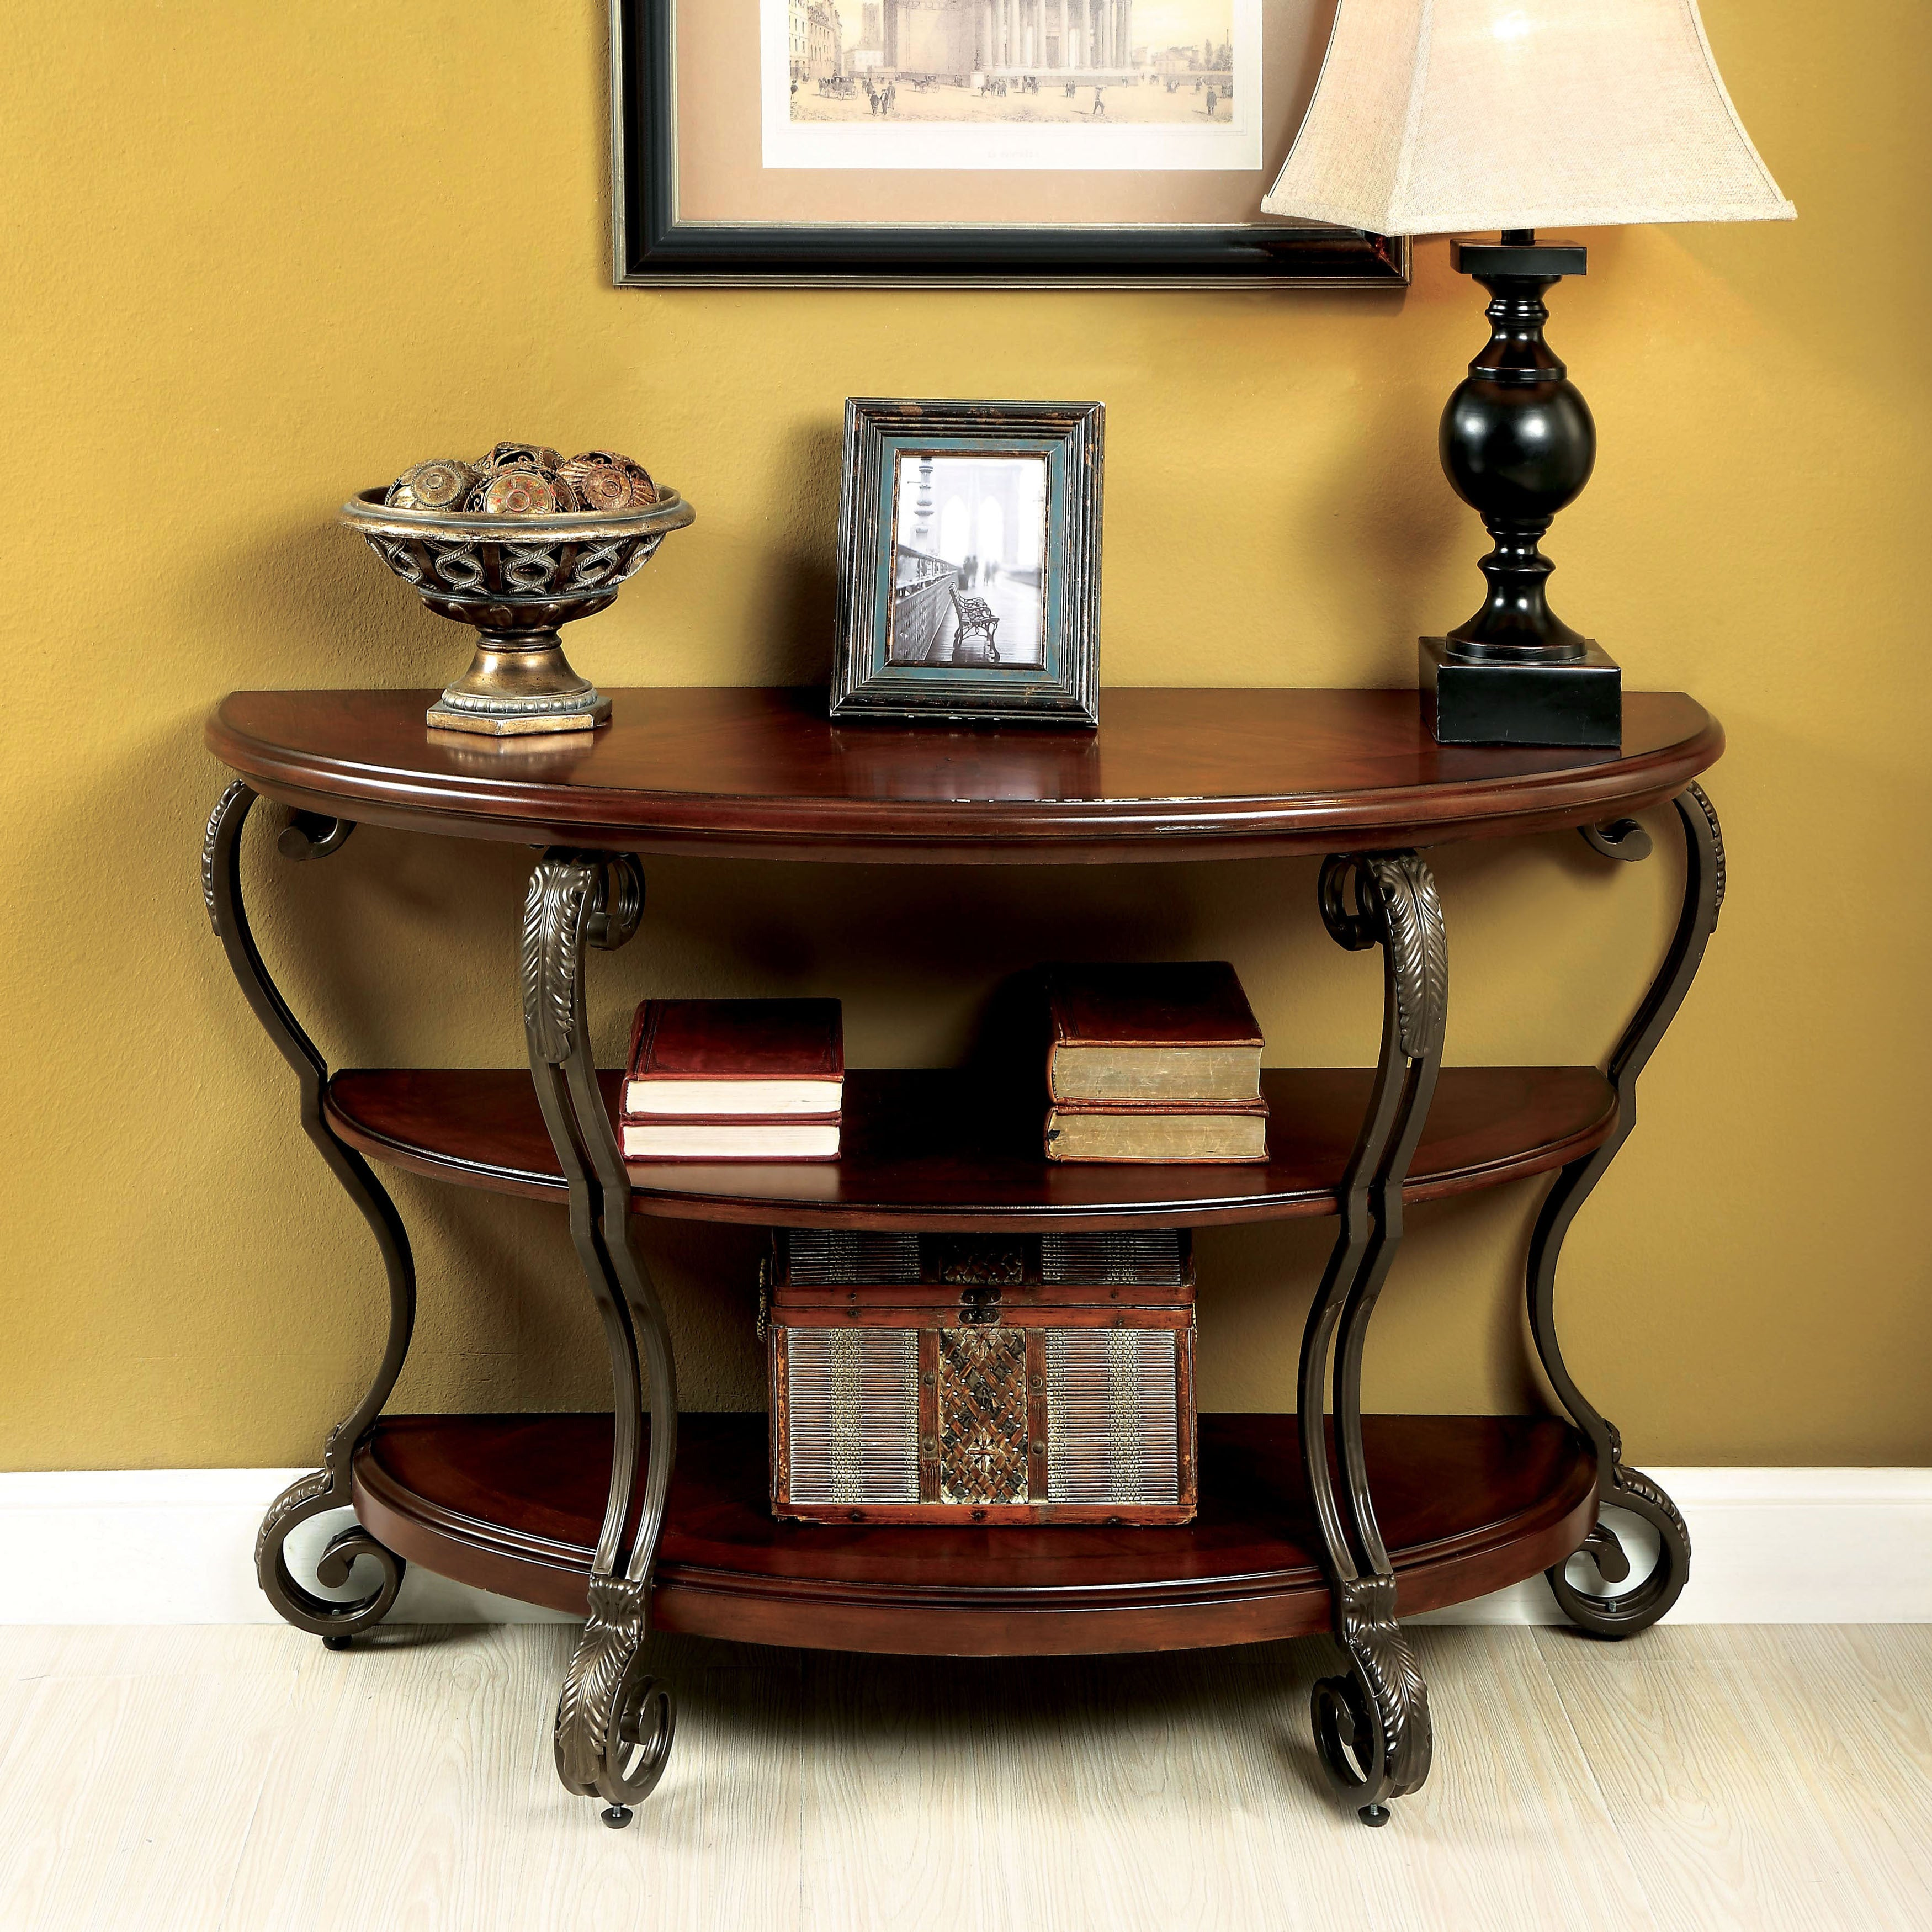 Furniture Of America Cohler Brown Cherry Finished Wood Metal Elegant Half Moon Sofa Table Free Shipping Today 18769305